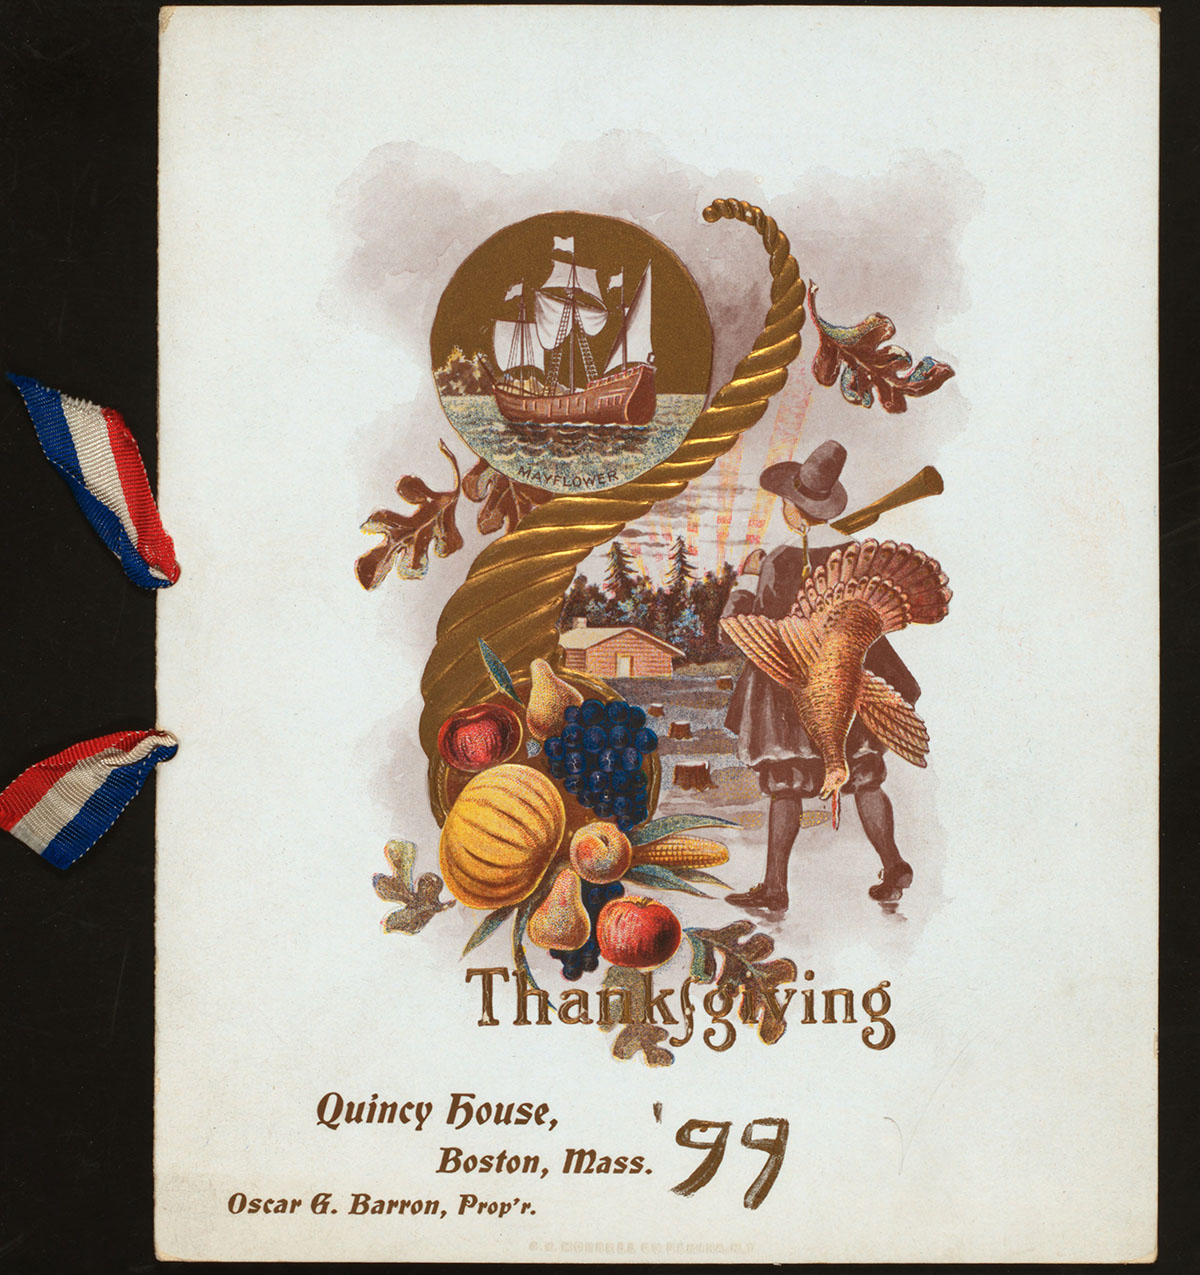 The cover of the Thanksgiving menu at Quincy House from 1899. / Image via the New York Public Library